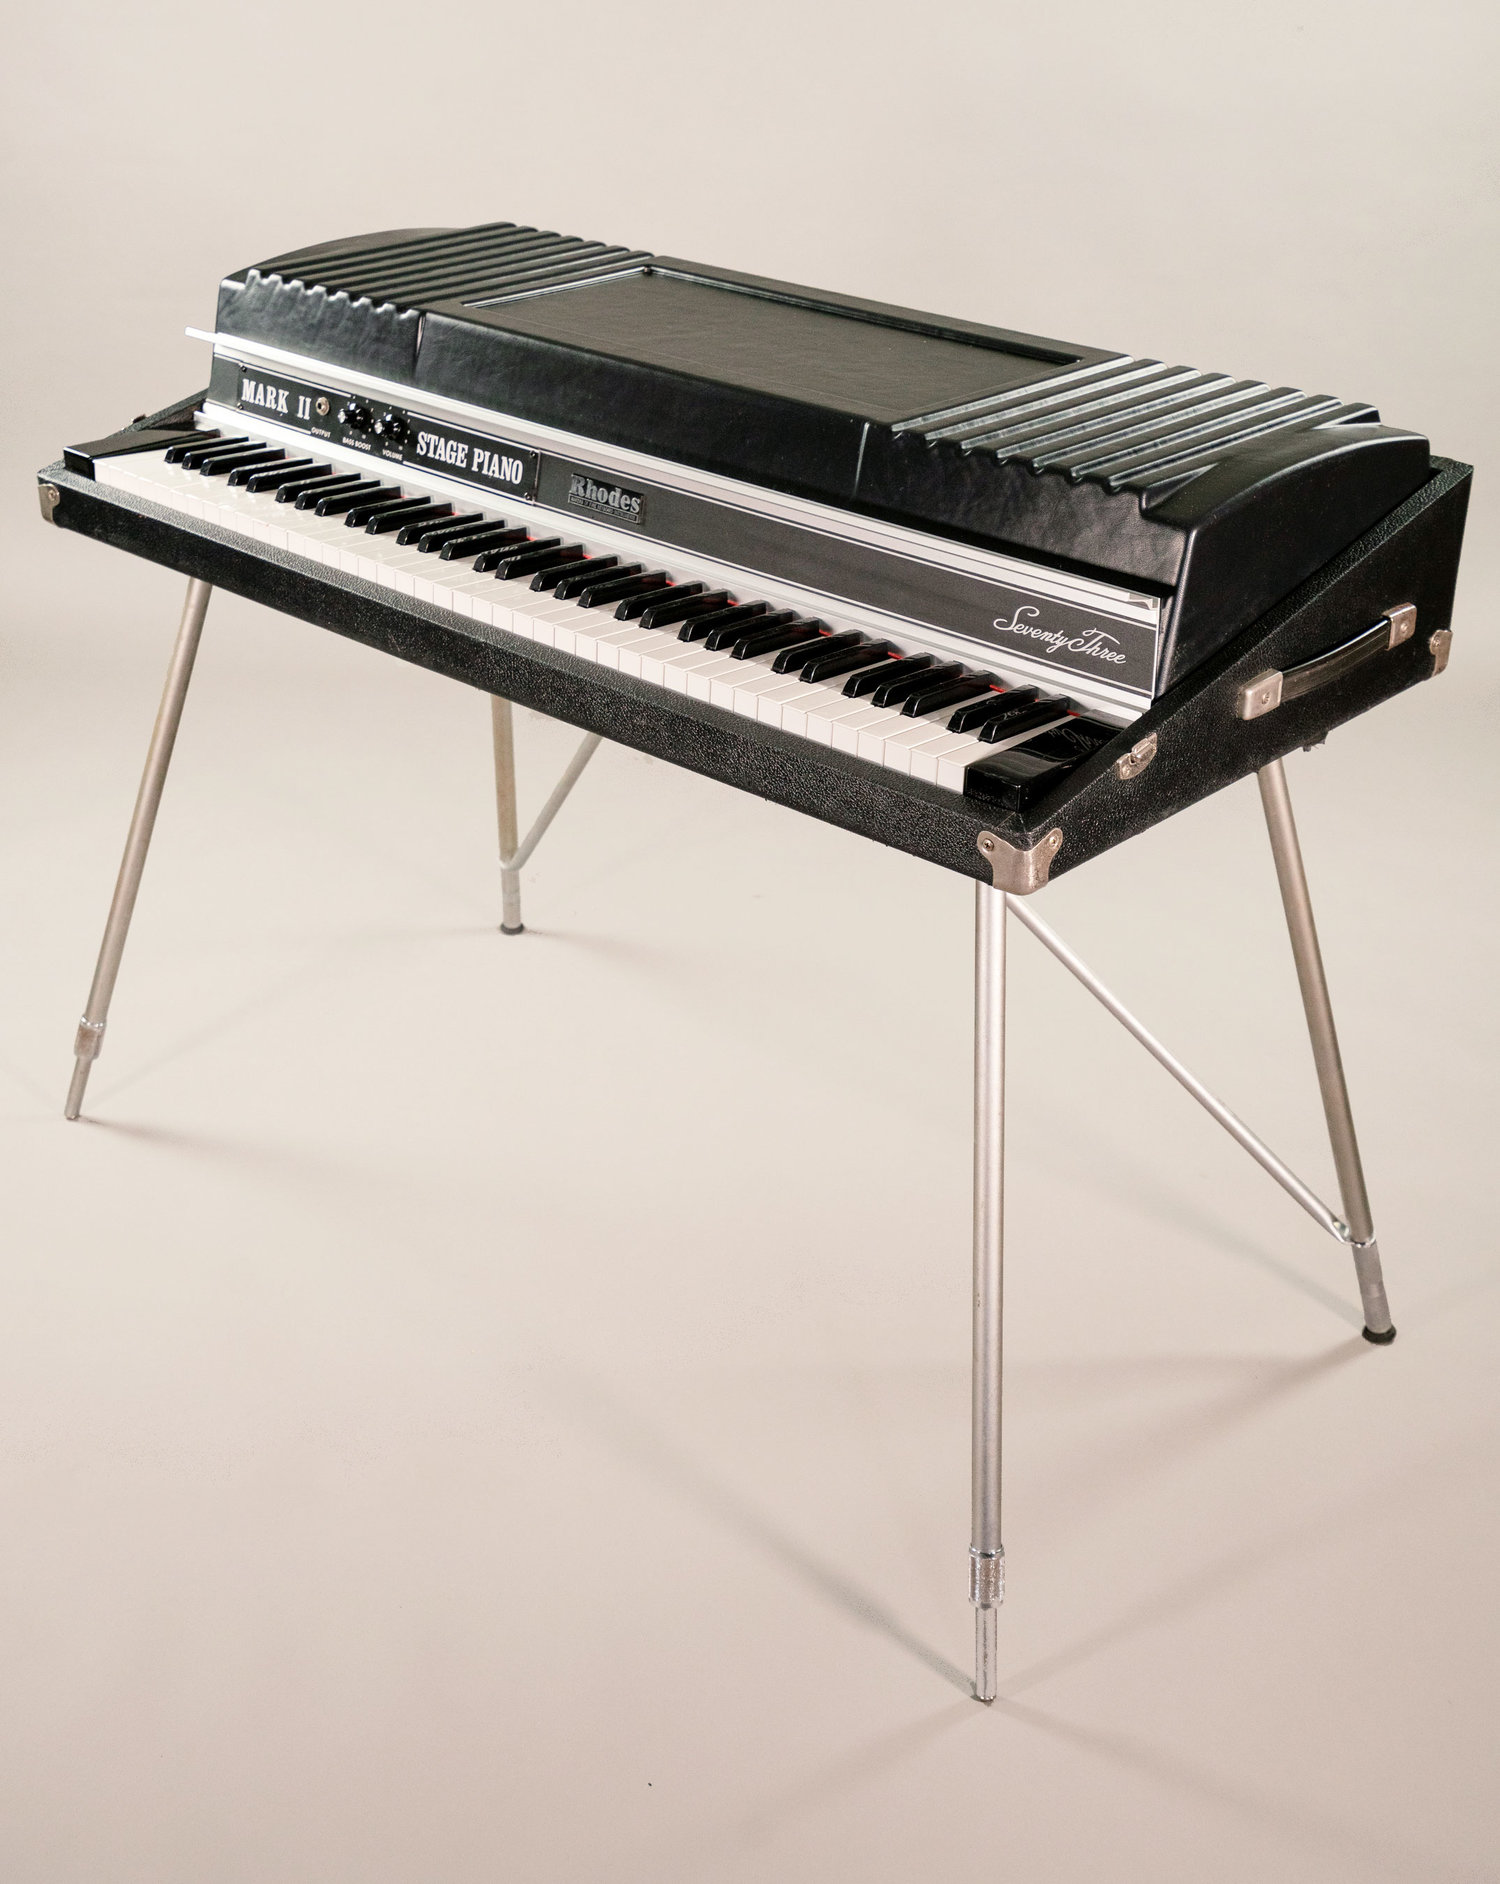 About the 1981-1984 Rhodes Mk II